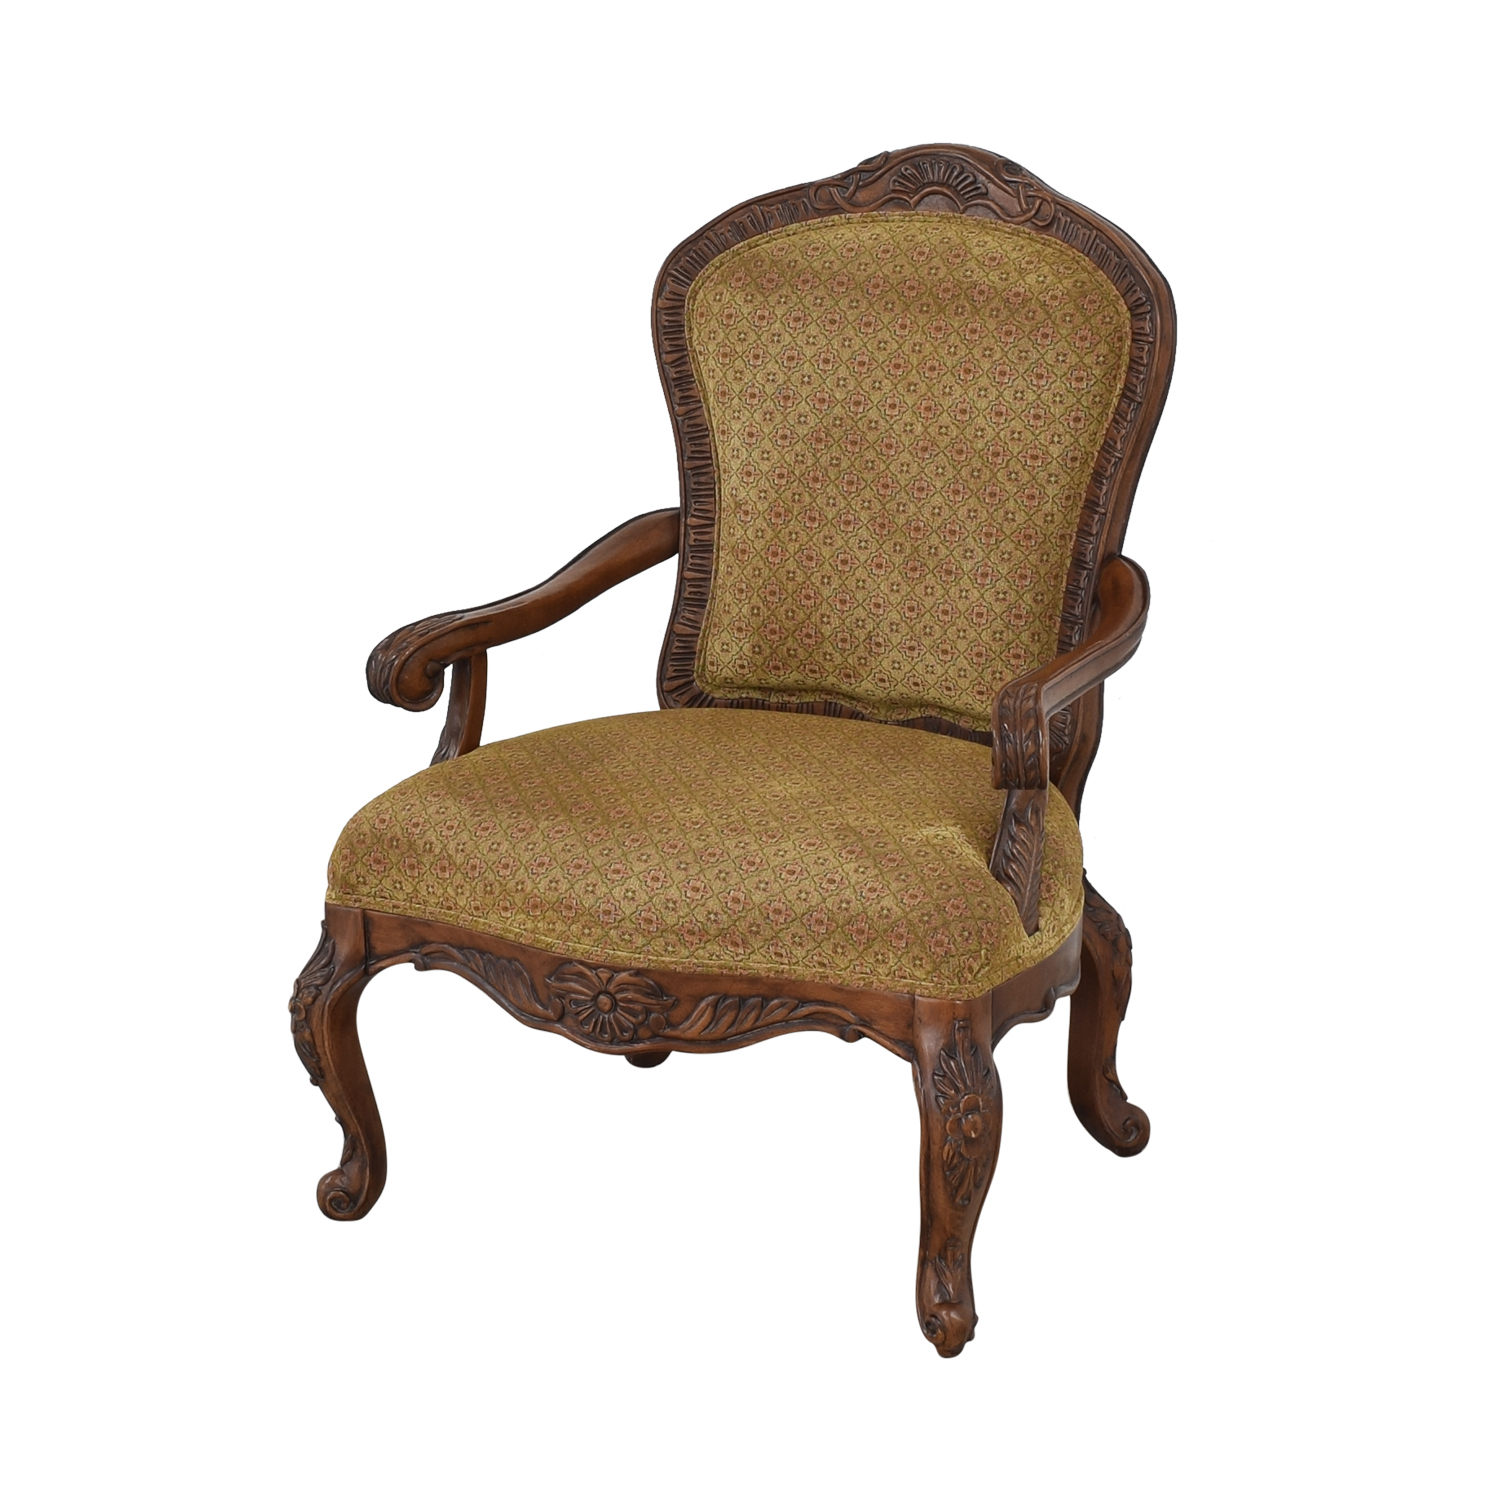 Bernhardt Bernhardt French Provincial Arm Chair Chairs